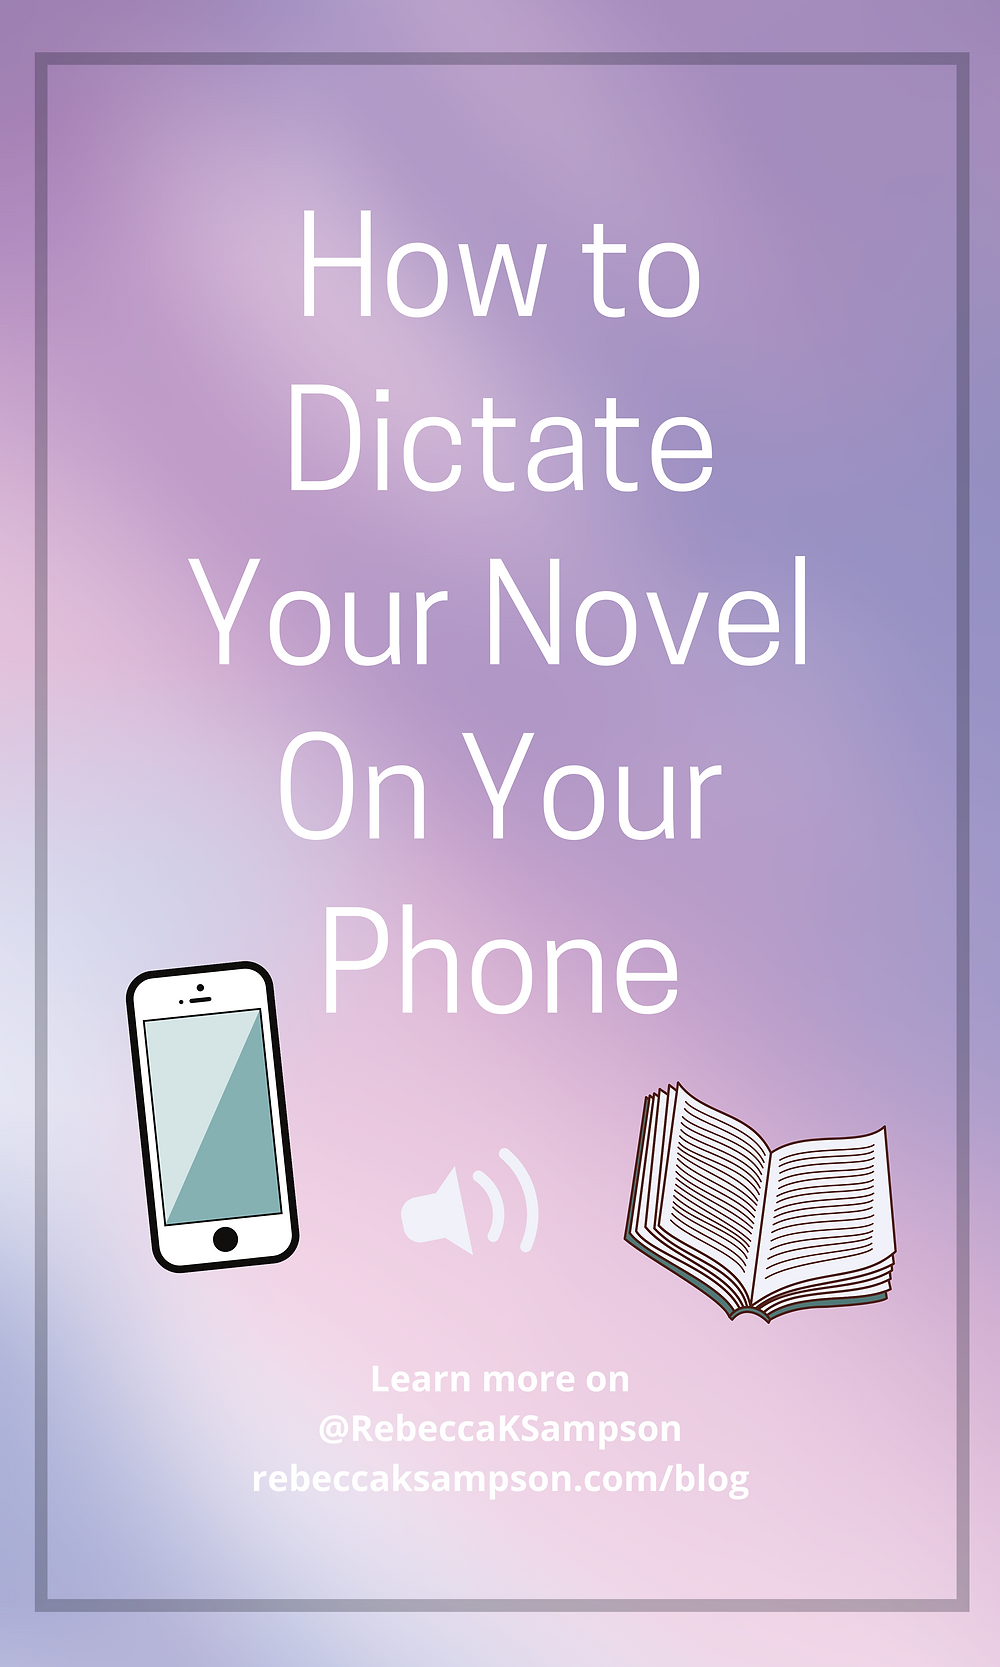 Easily dictate your novel with your phone, saving you time while drafting a novel